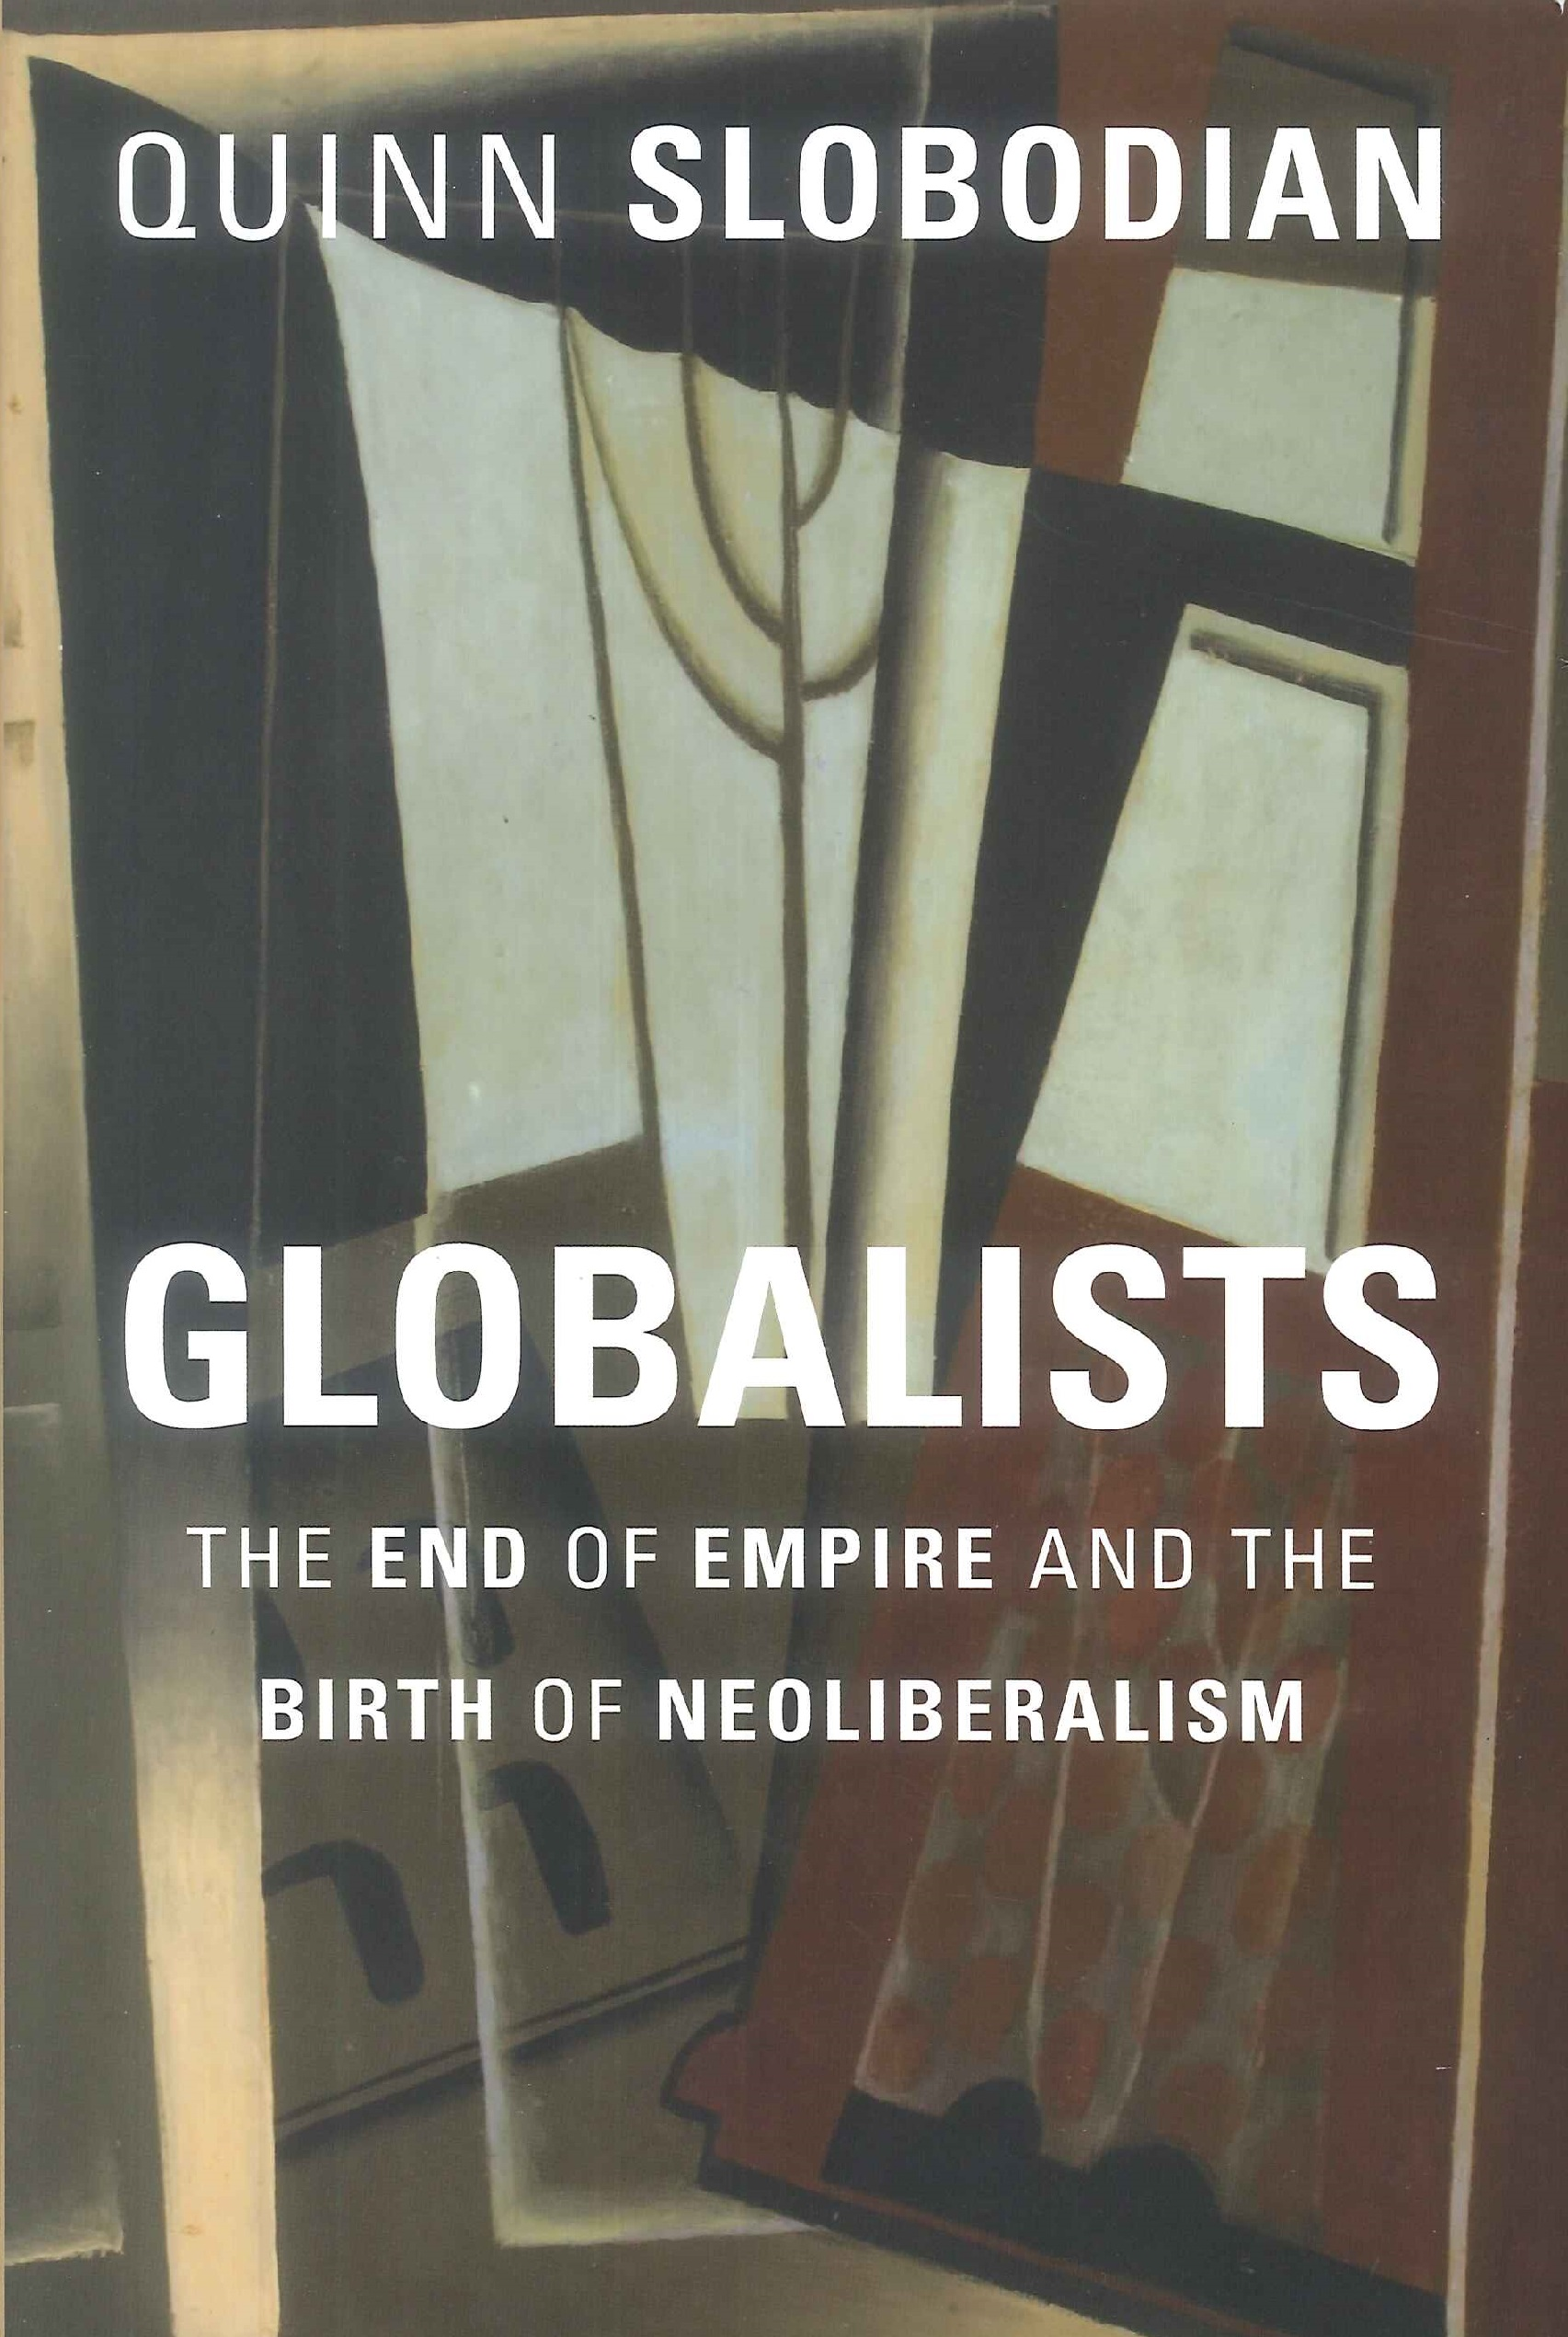 Globalists:the end of empire and the birth of neoliberalism